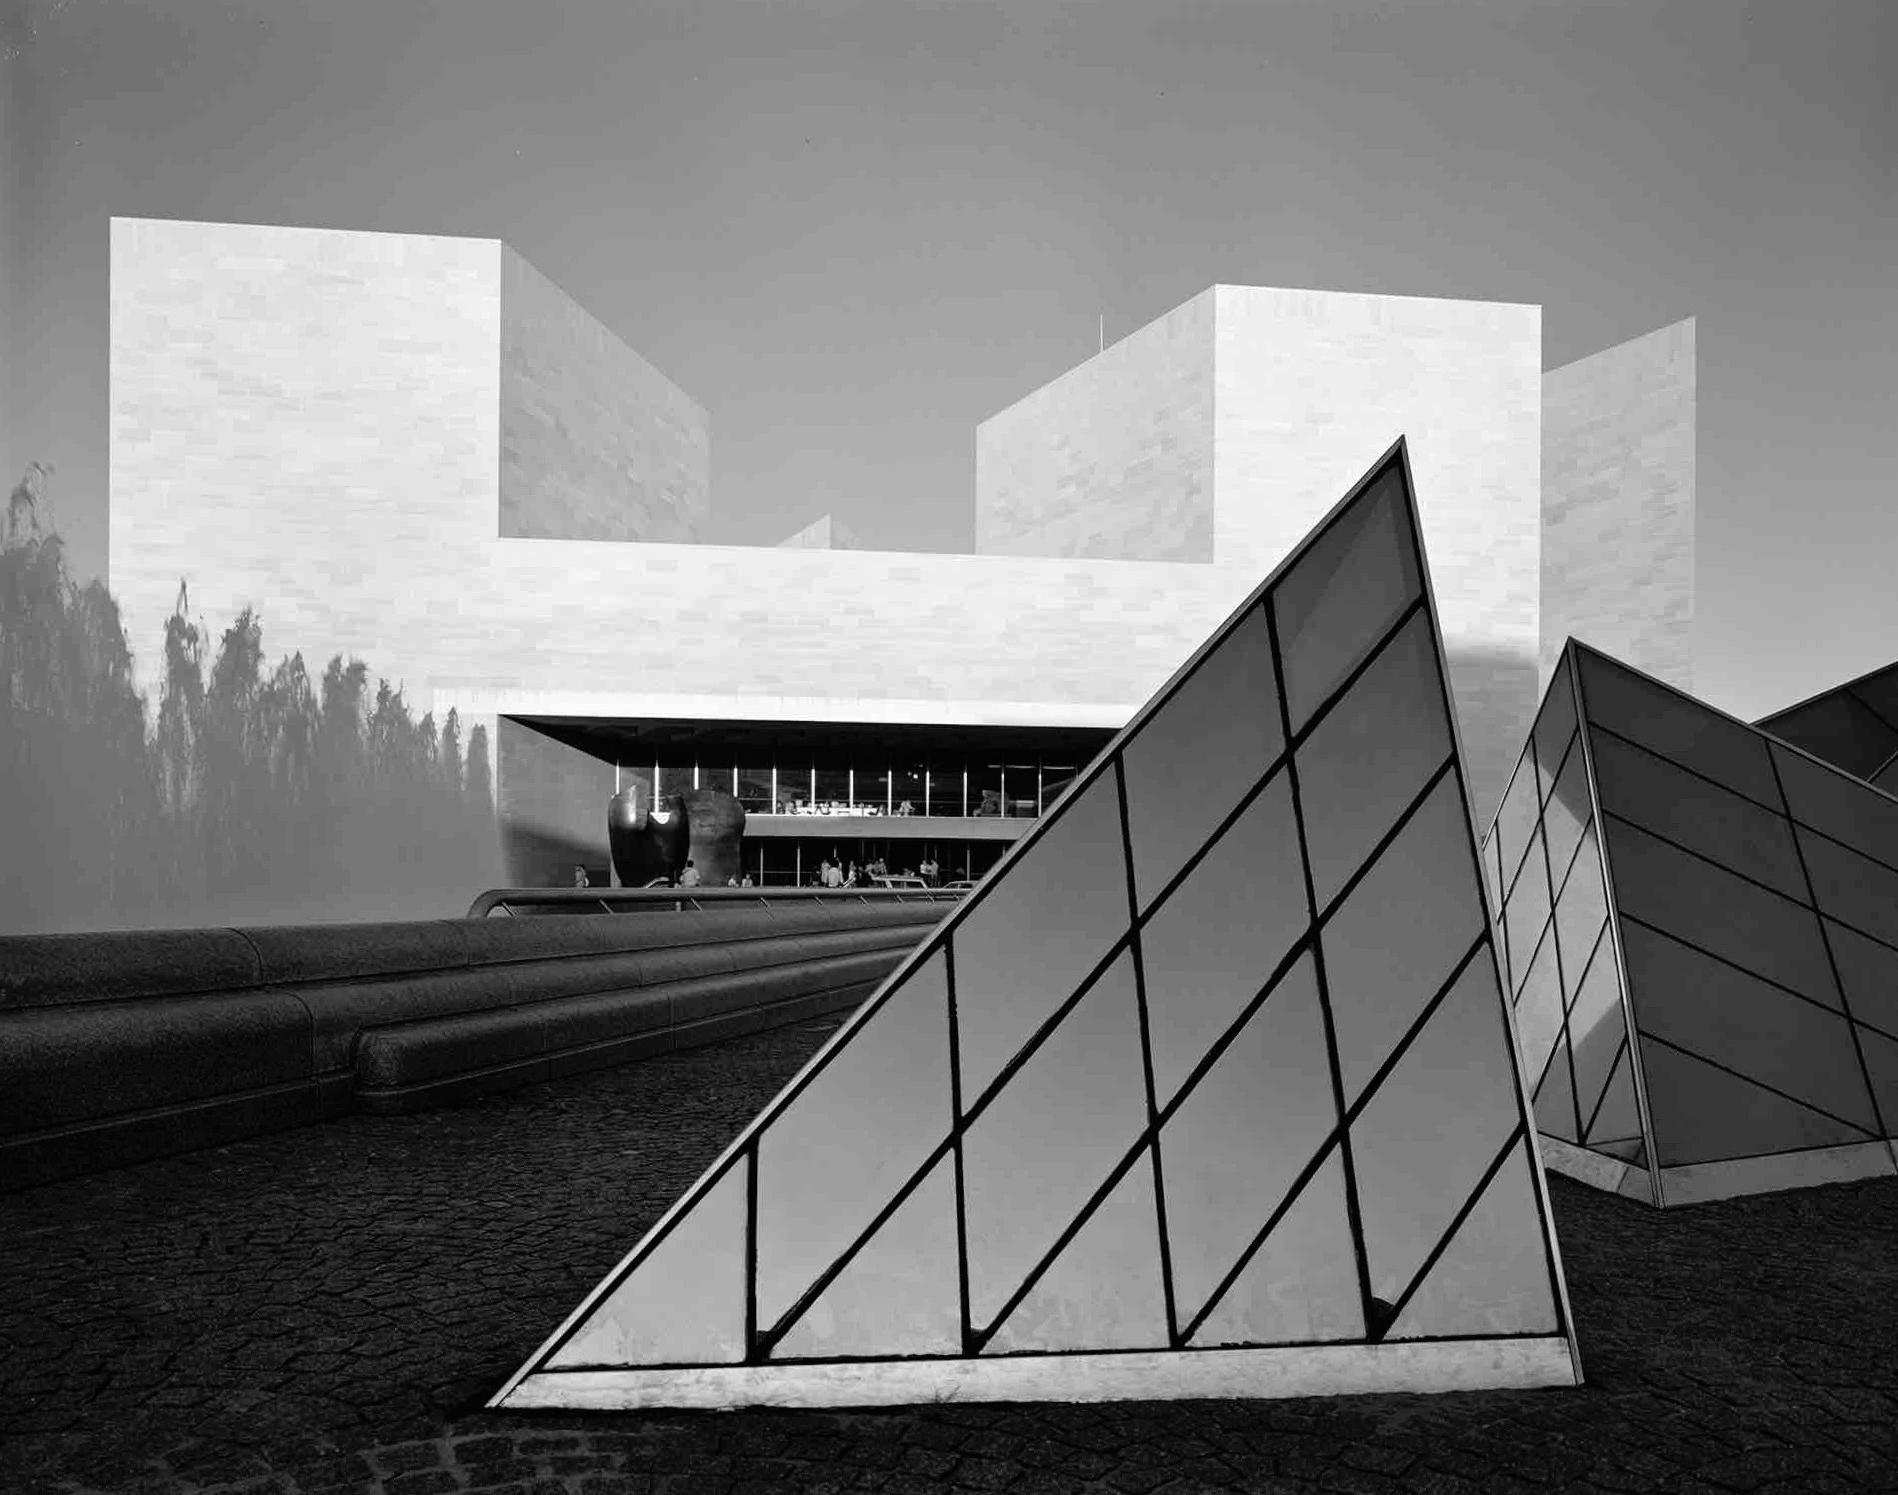 I.M. Pei, East Wing (Washington D.C.) 1990